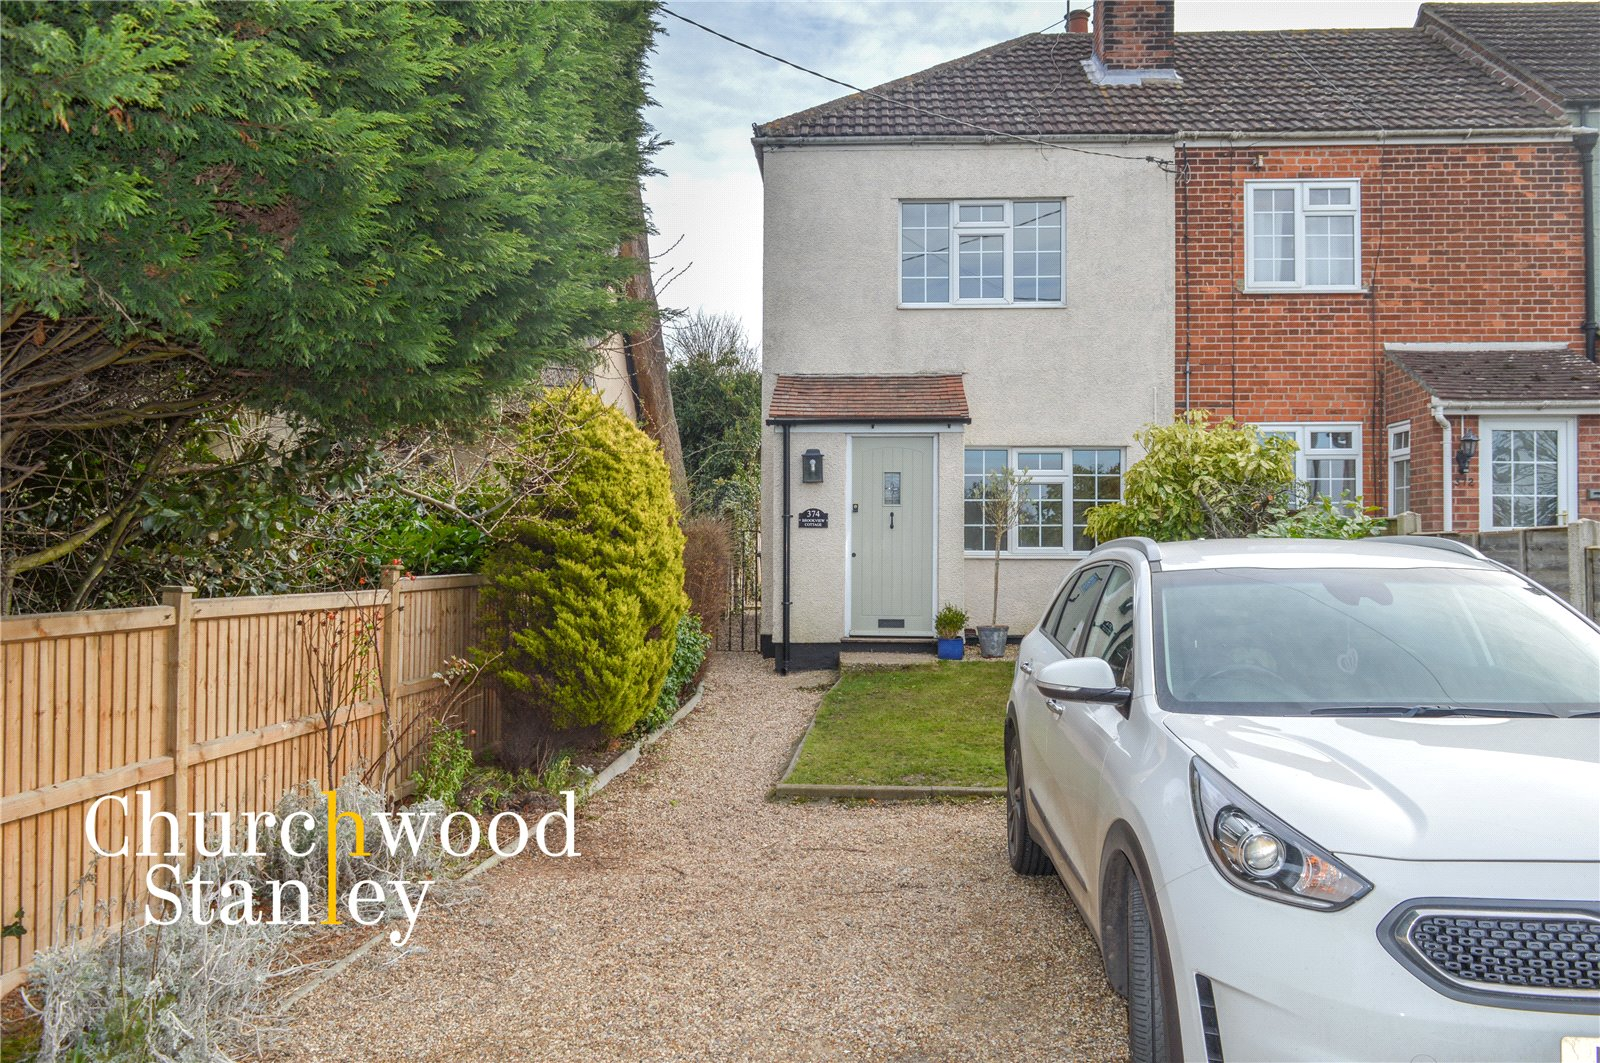 2 bed end of terrace house to rent in Harwich Road, Thorpe-le-Soken, Clacton-on-Sea, CO16